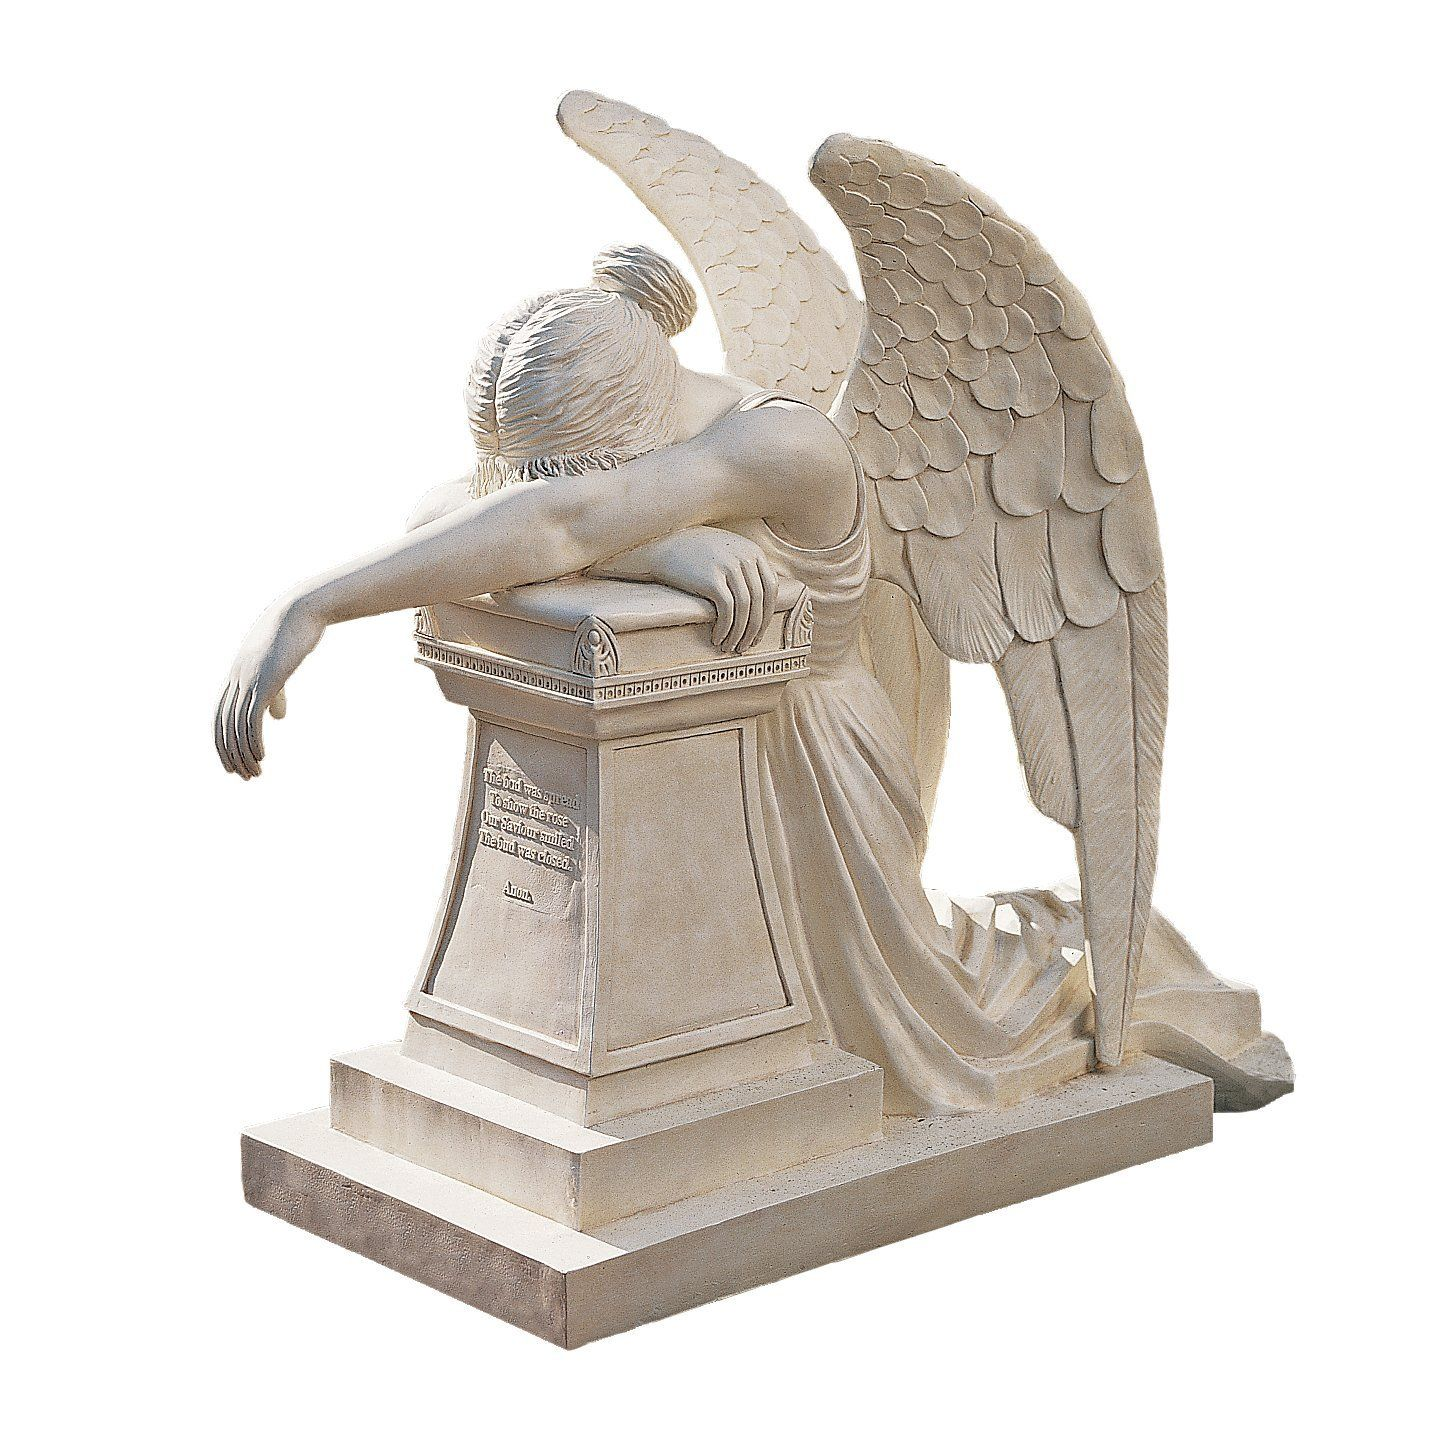 Amazon.com : Design Toscano Angel of Grief Monument Statue